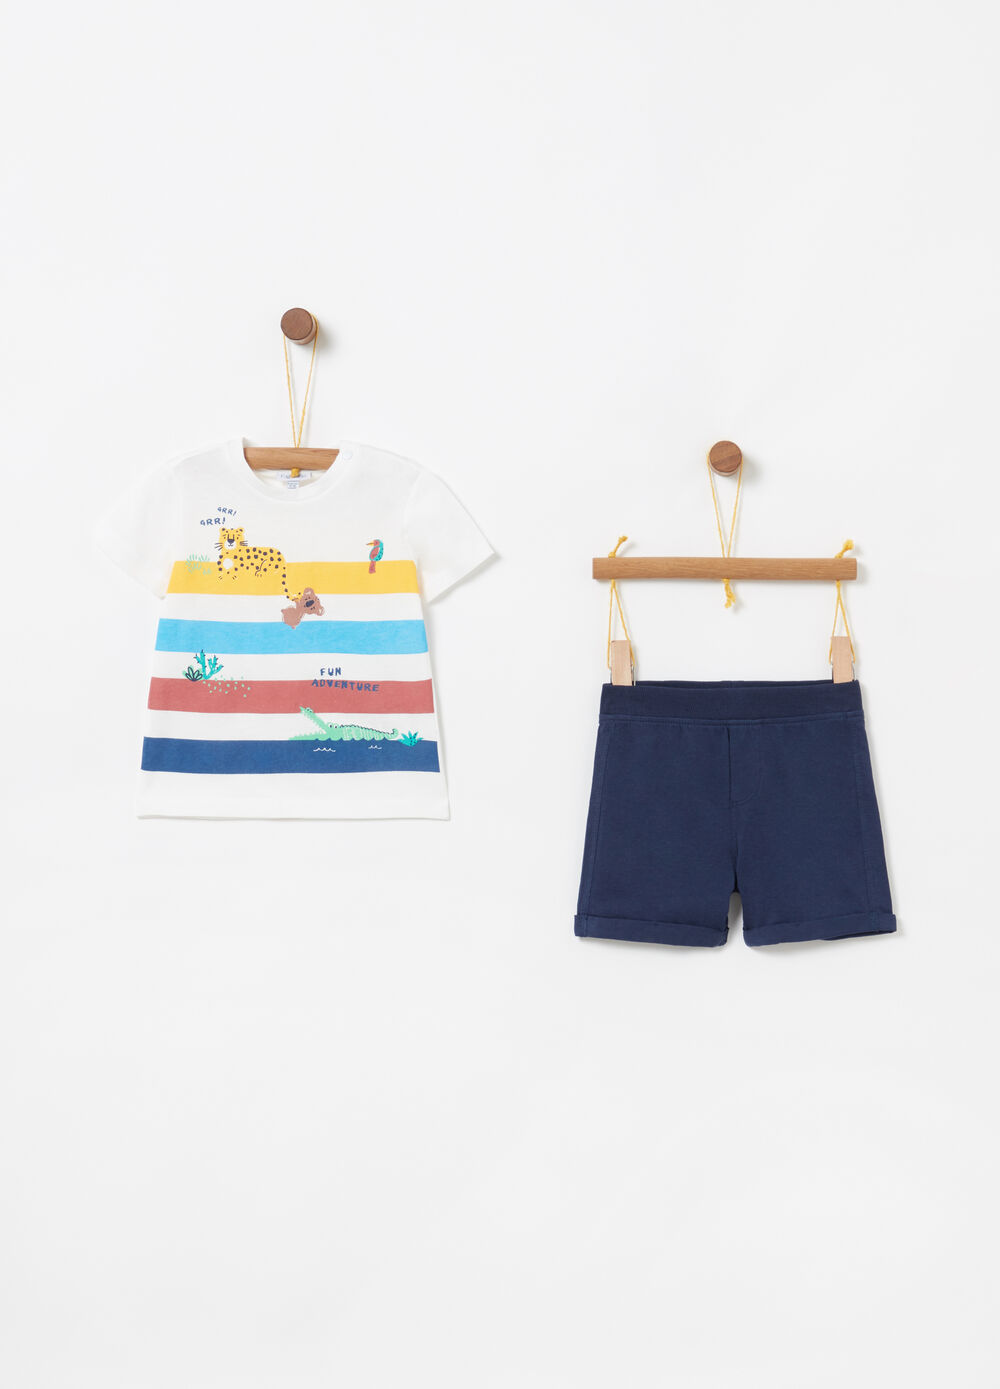 Jogging set with T-shirt and shorts with animals and ribbing